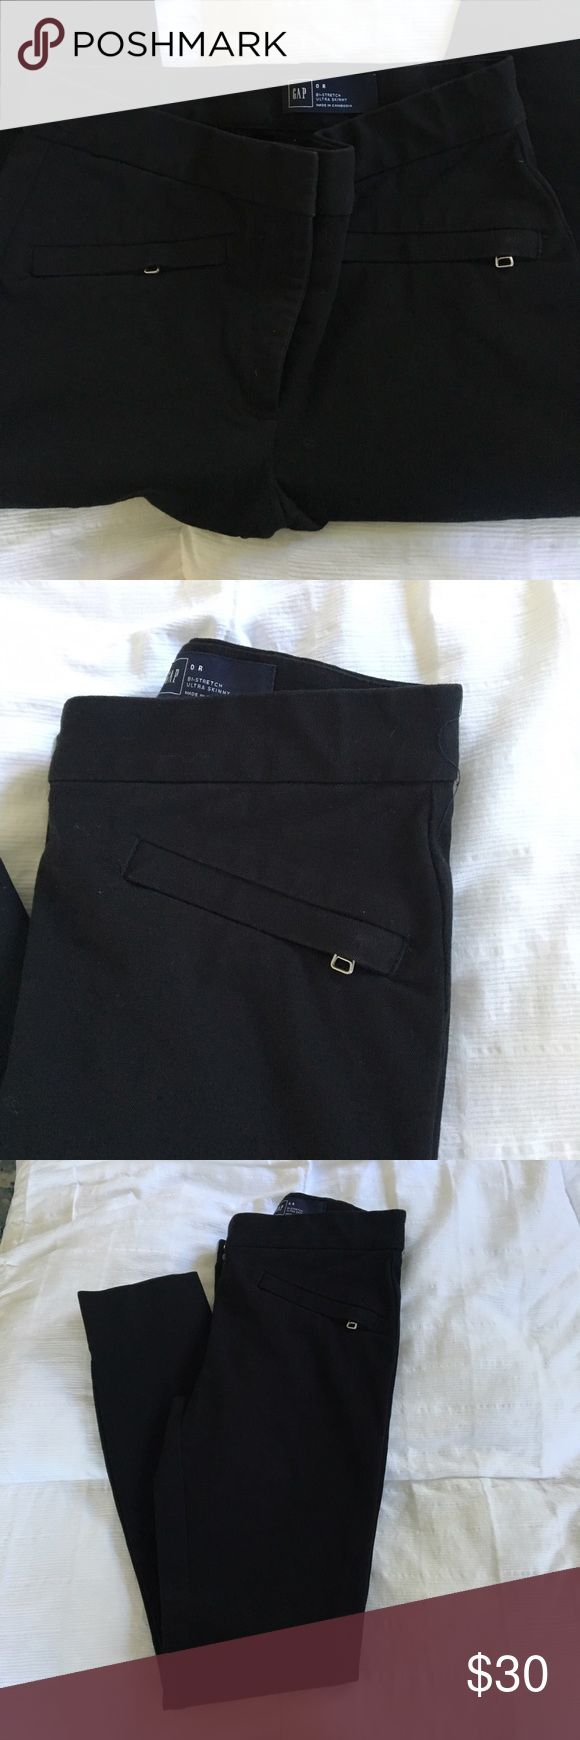 Gap Trousers Gap Black Trousers.  Fits stretchy. Very comfortable. Worn a few times to work. Perfect Condition.  Also Available in Navy. GAP Pants Trousers